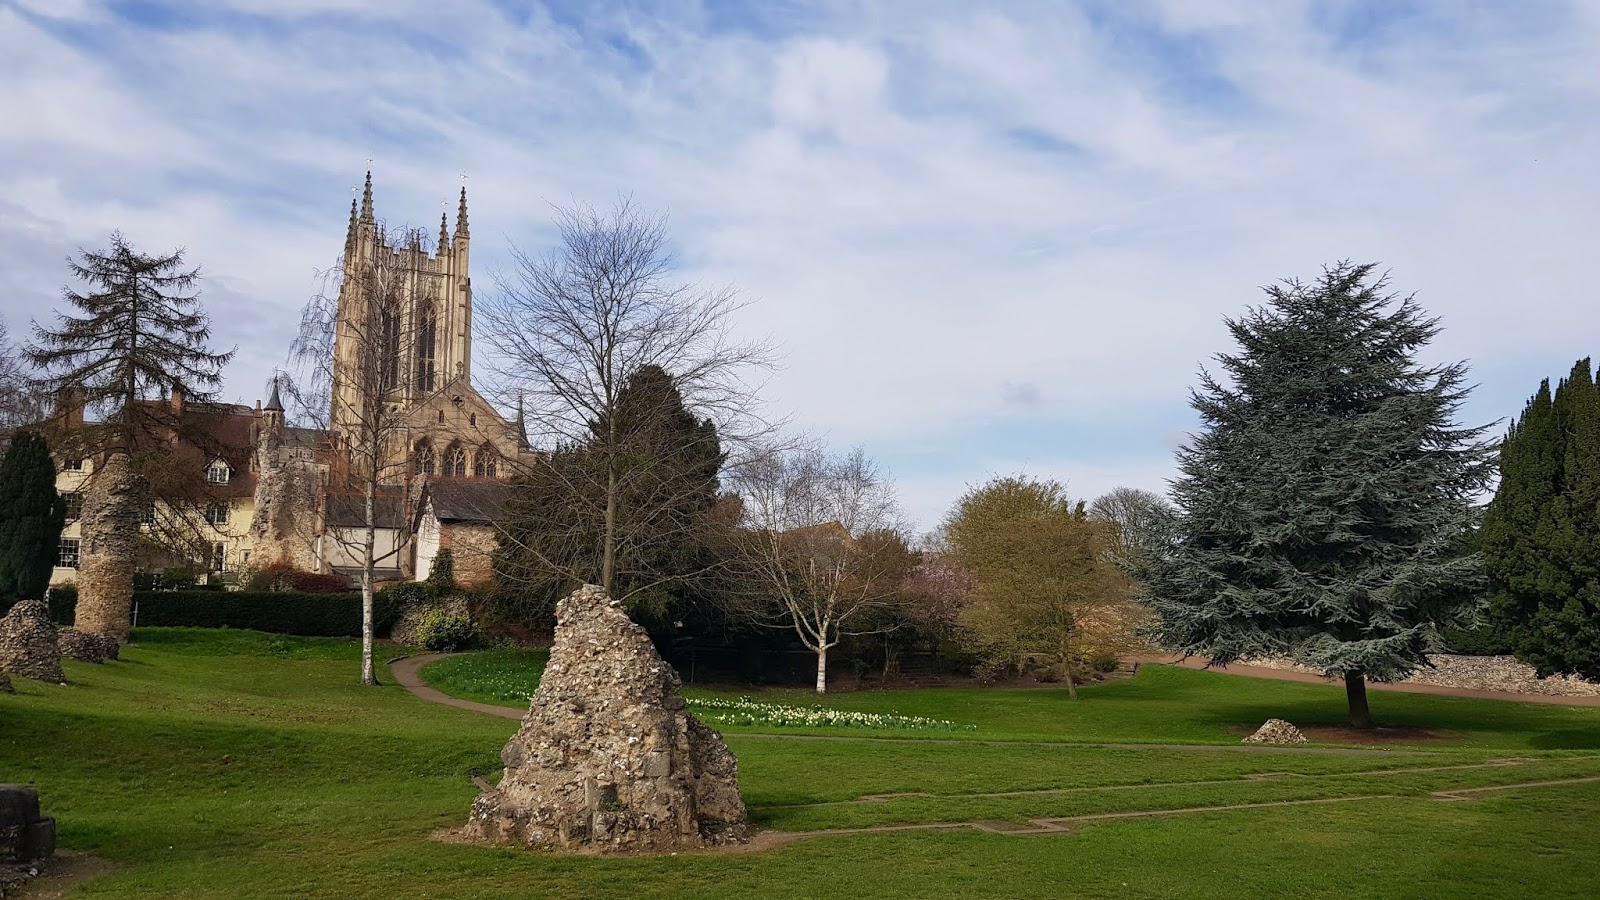 Abbey Garden ruins with St Edmundsbury Cathedral in the background